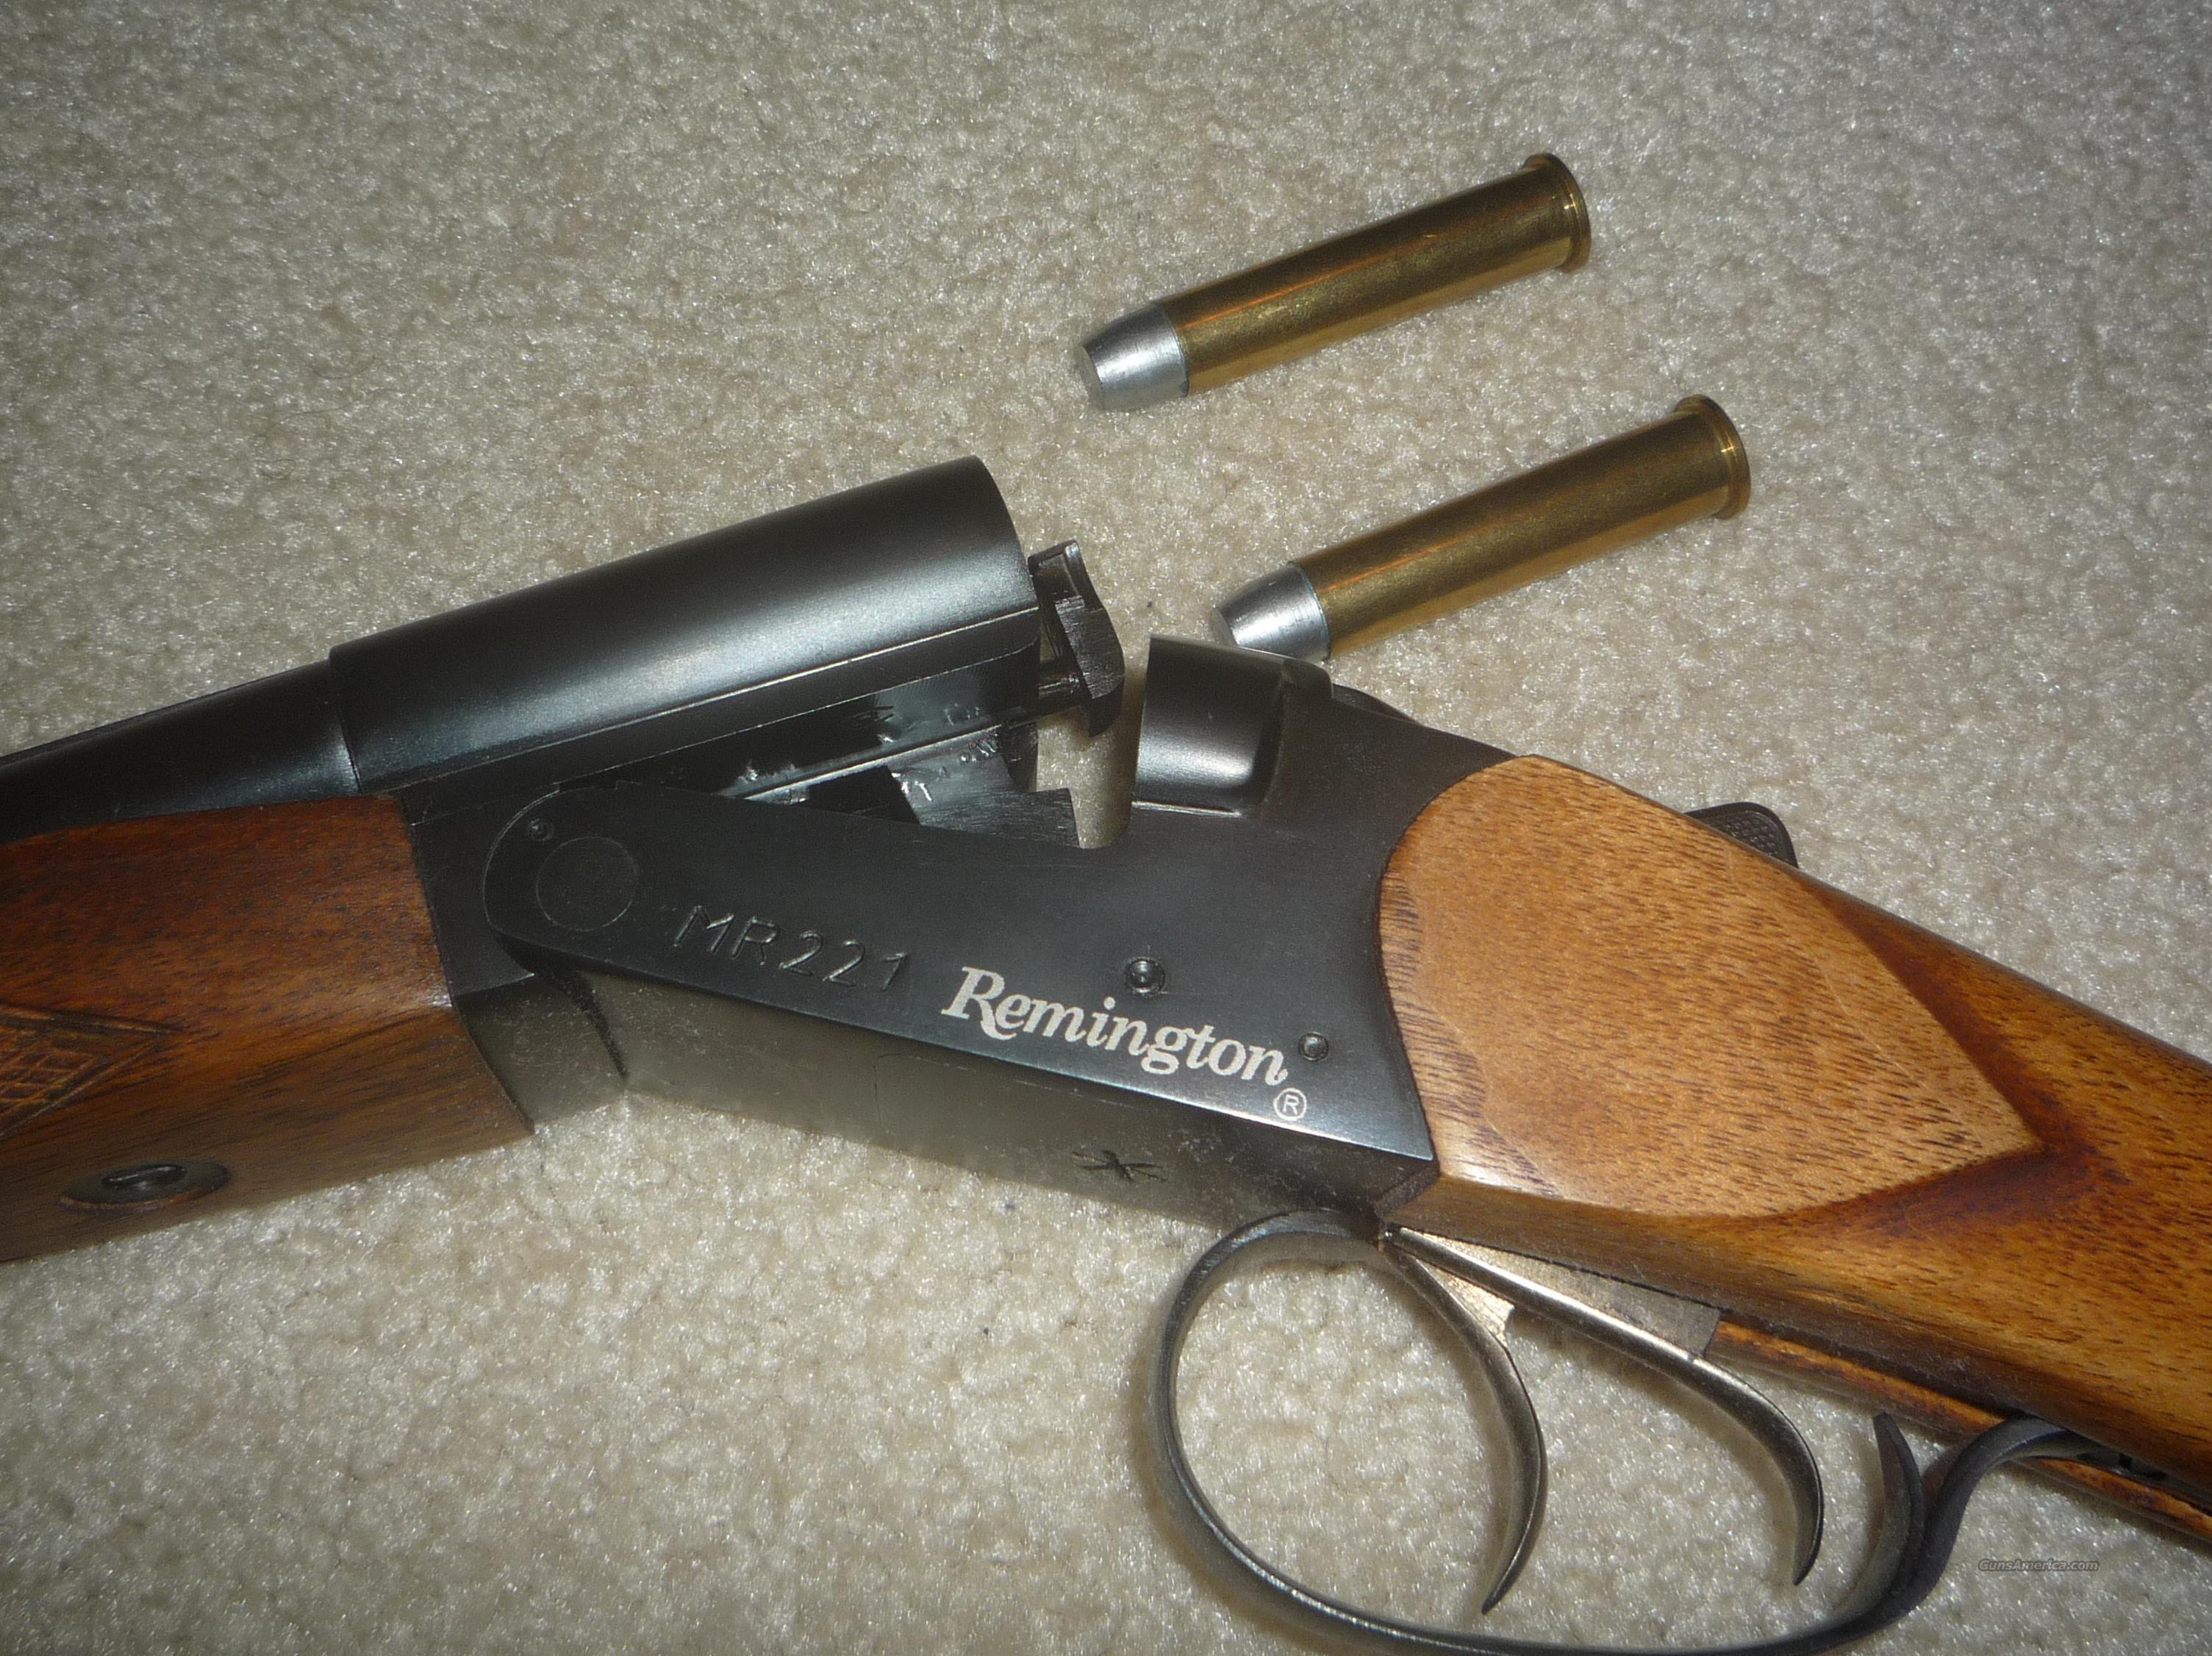 Remington Double Rifle 45/70  Guns > Rifles > Remington Rifles - Modern > Double Rifles